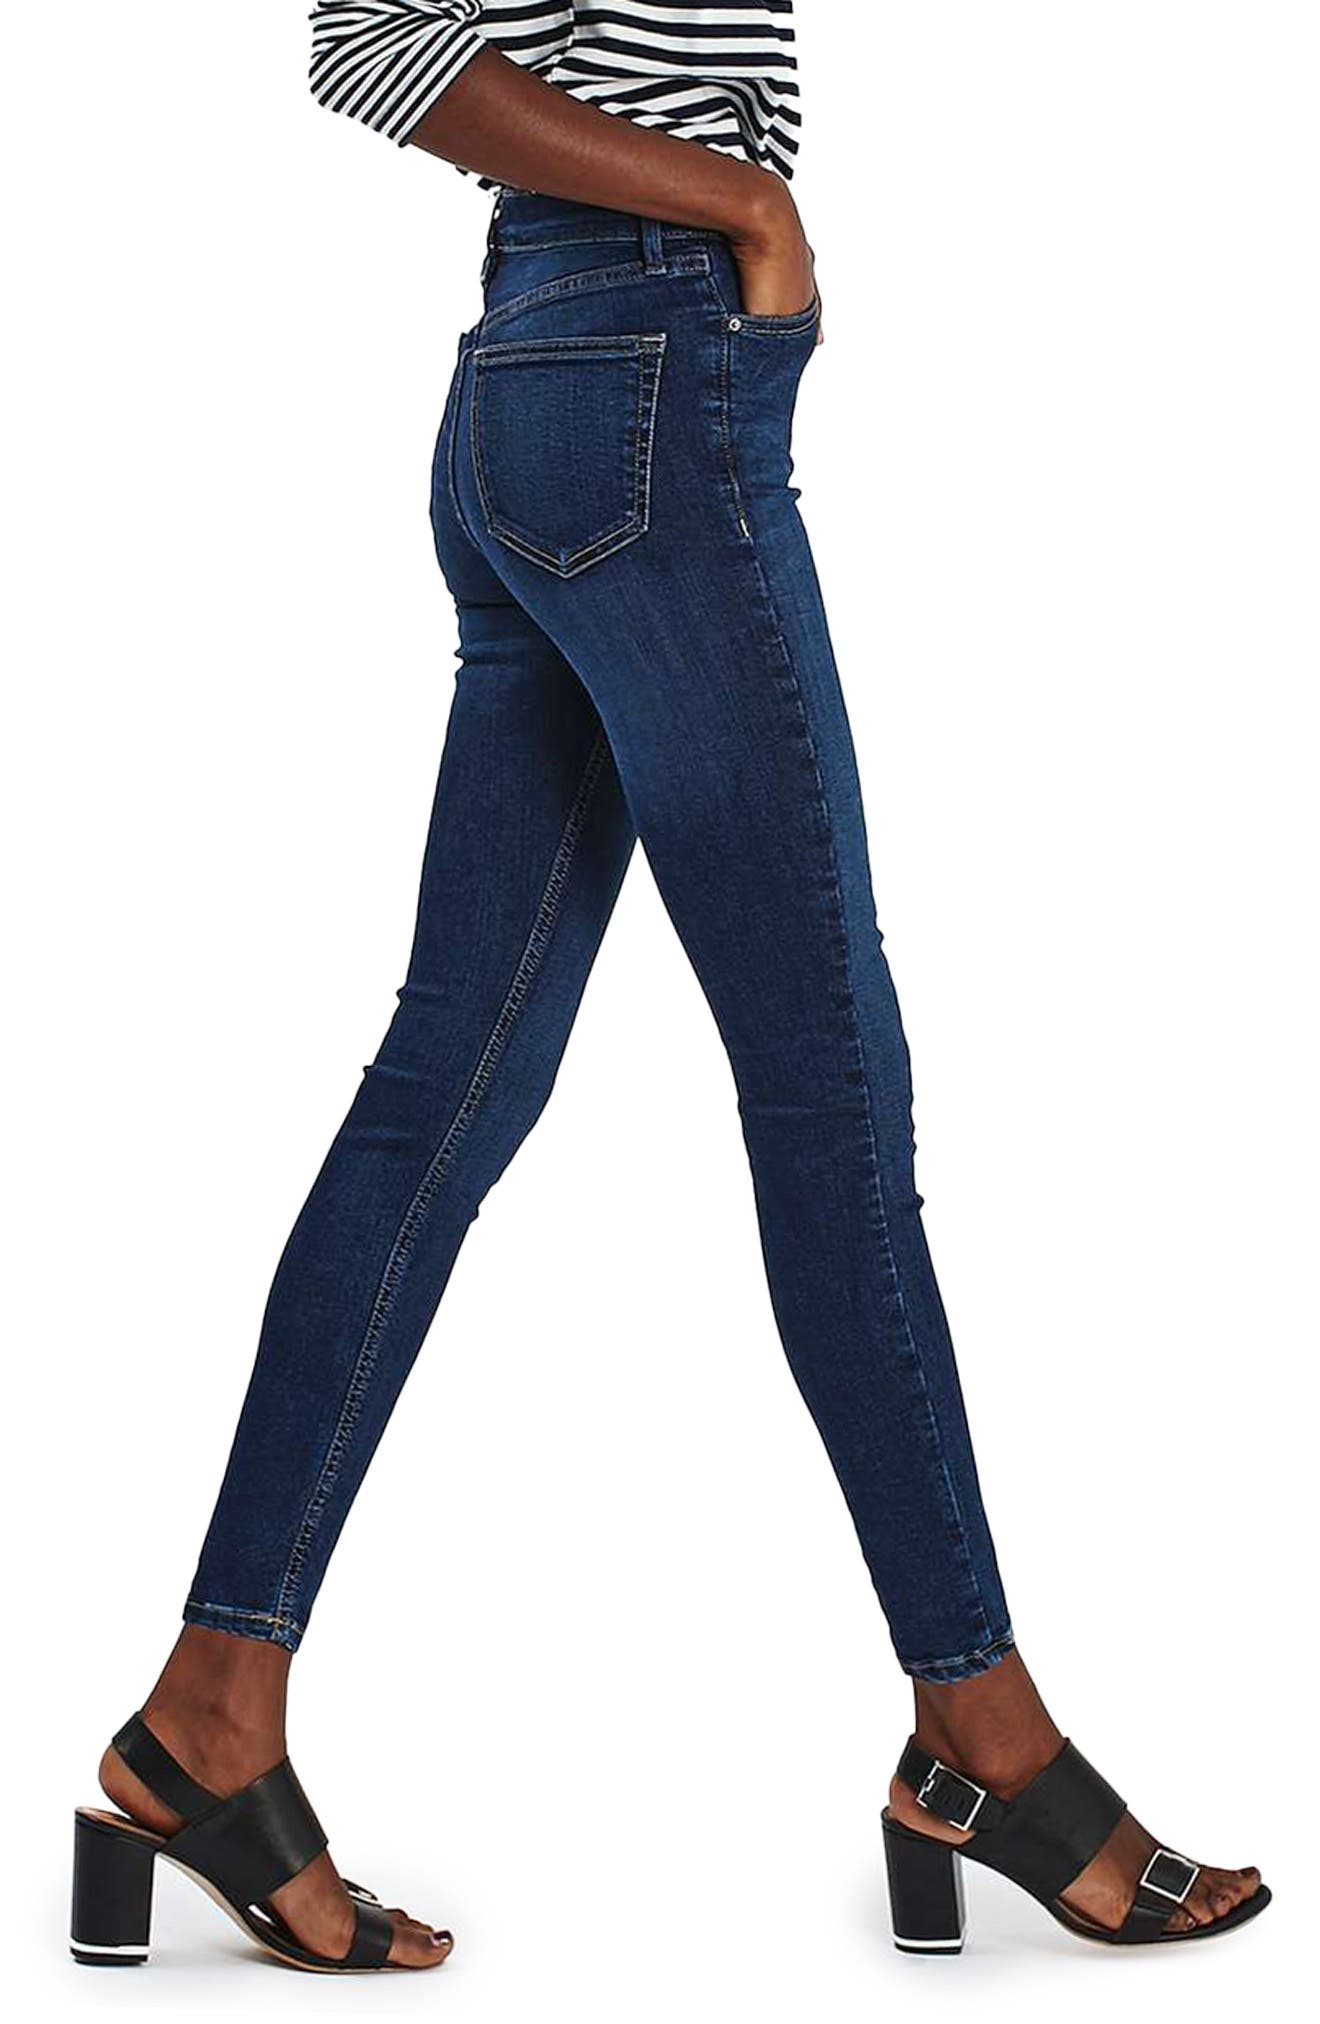 Jamie High Waist Ankle Skinny Jeans,                             Alternate thumbnail 3, color,                             401